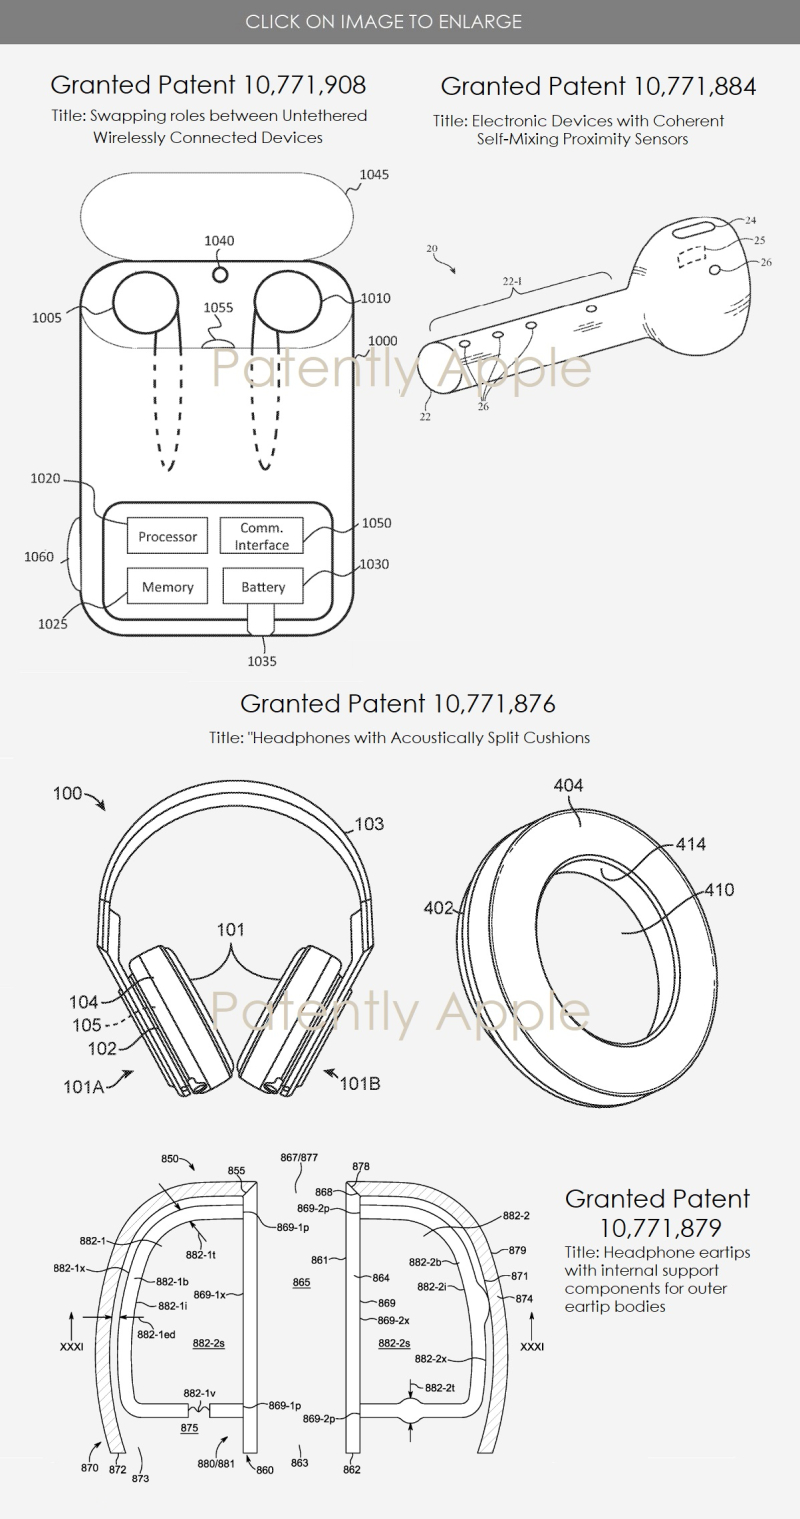 2 granted patents for headware from Apple